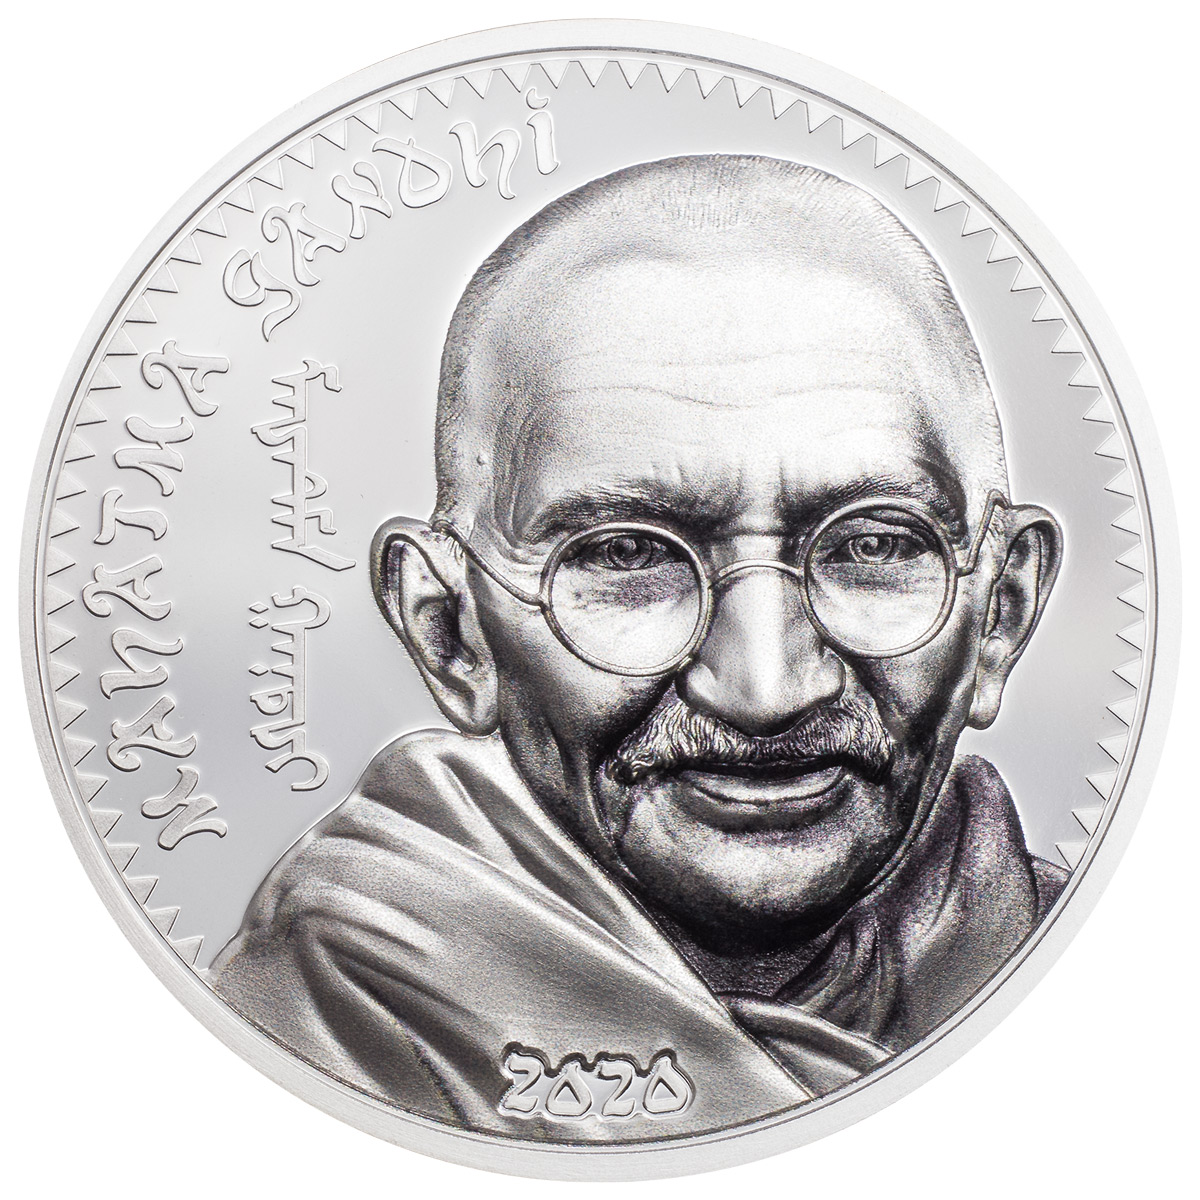 2020 Mongolia Gandhi High Relief 1 oz Silver Colorized 1 Coin GEM Proof OGP